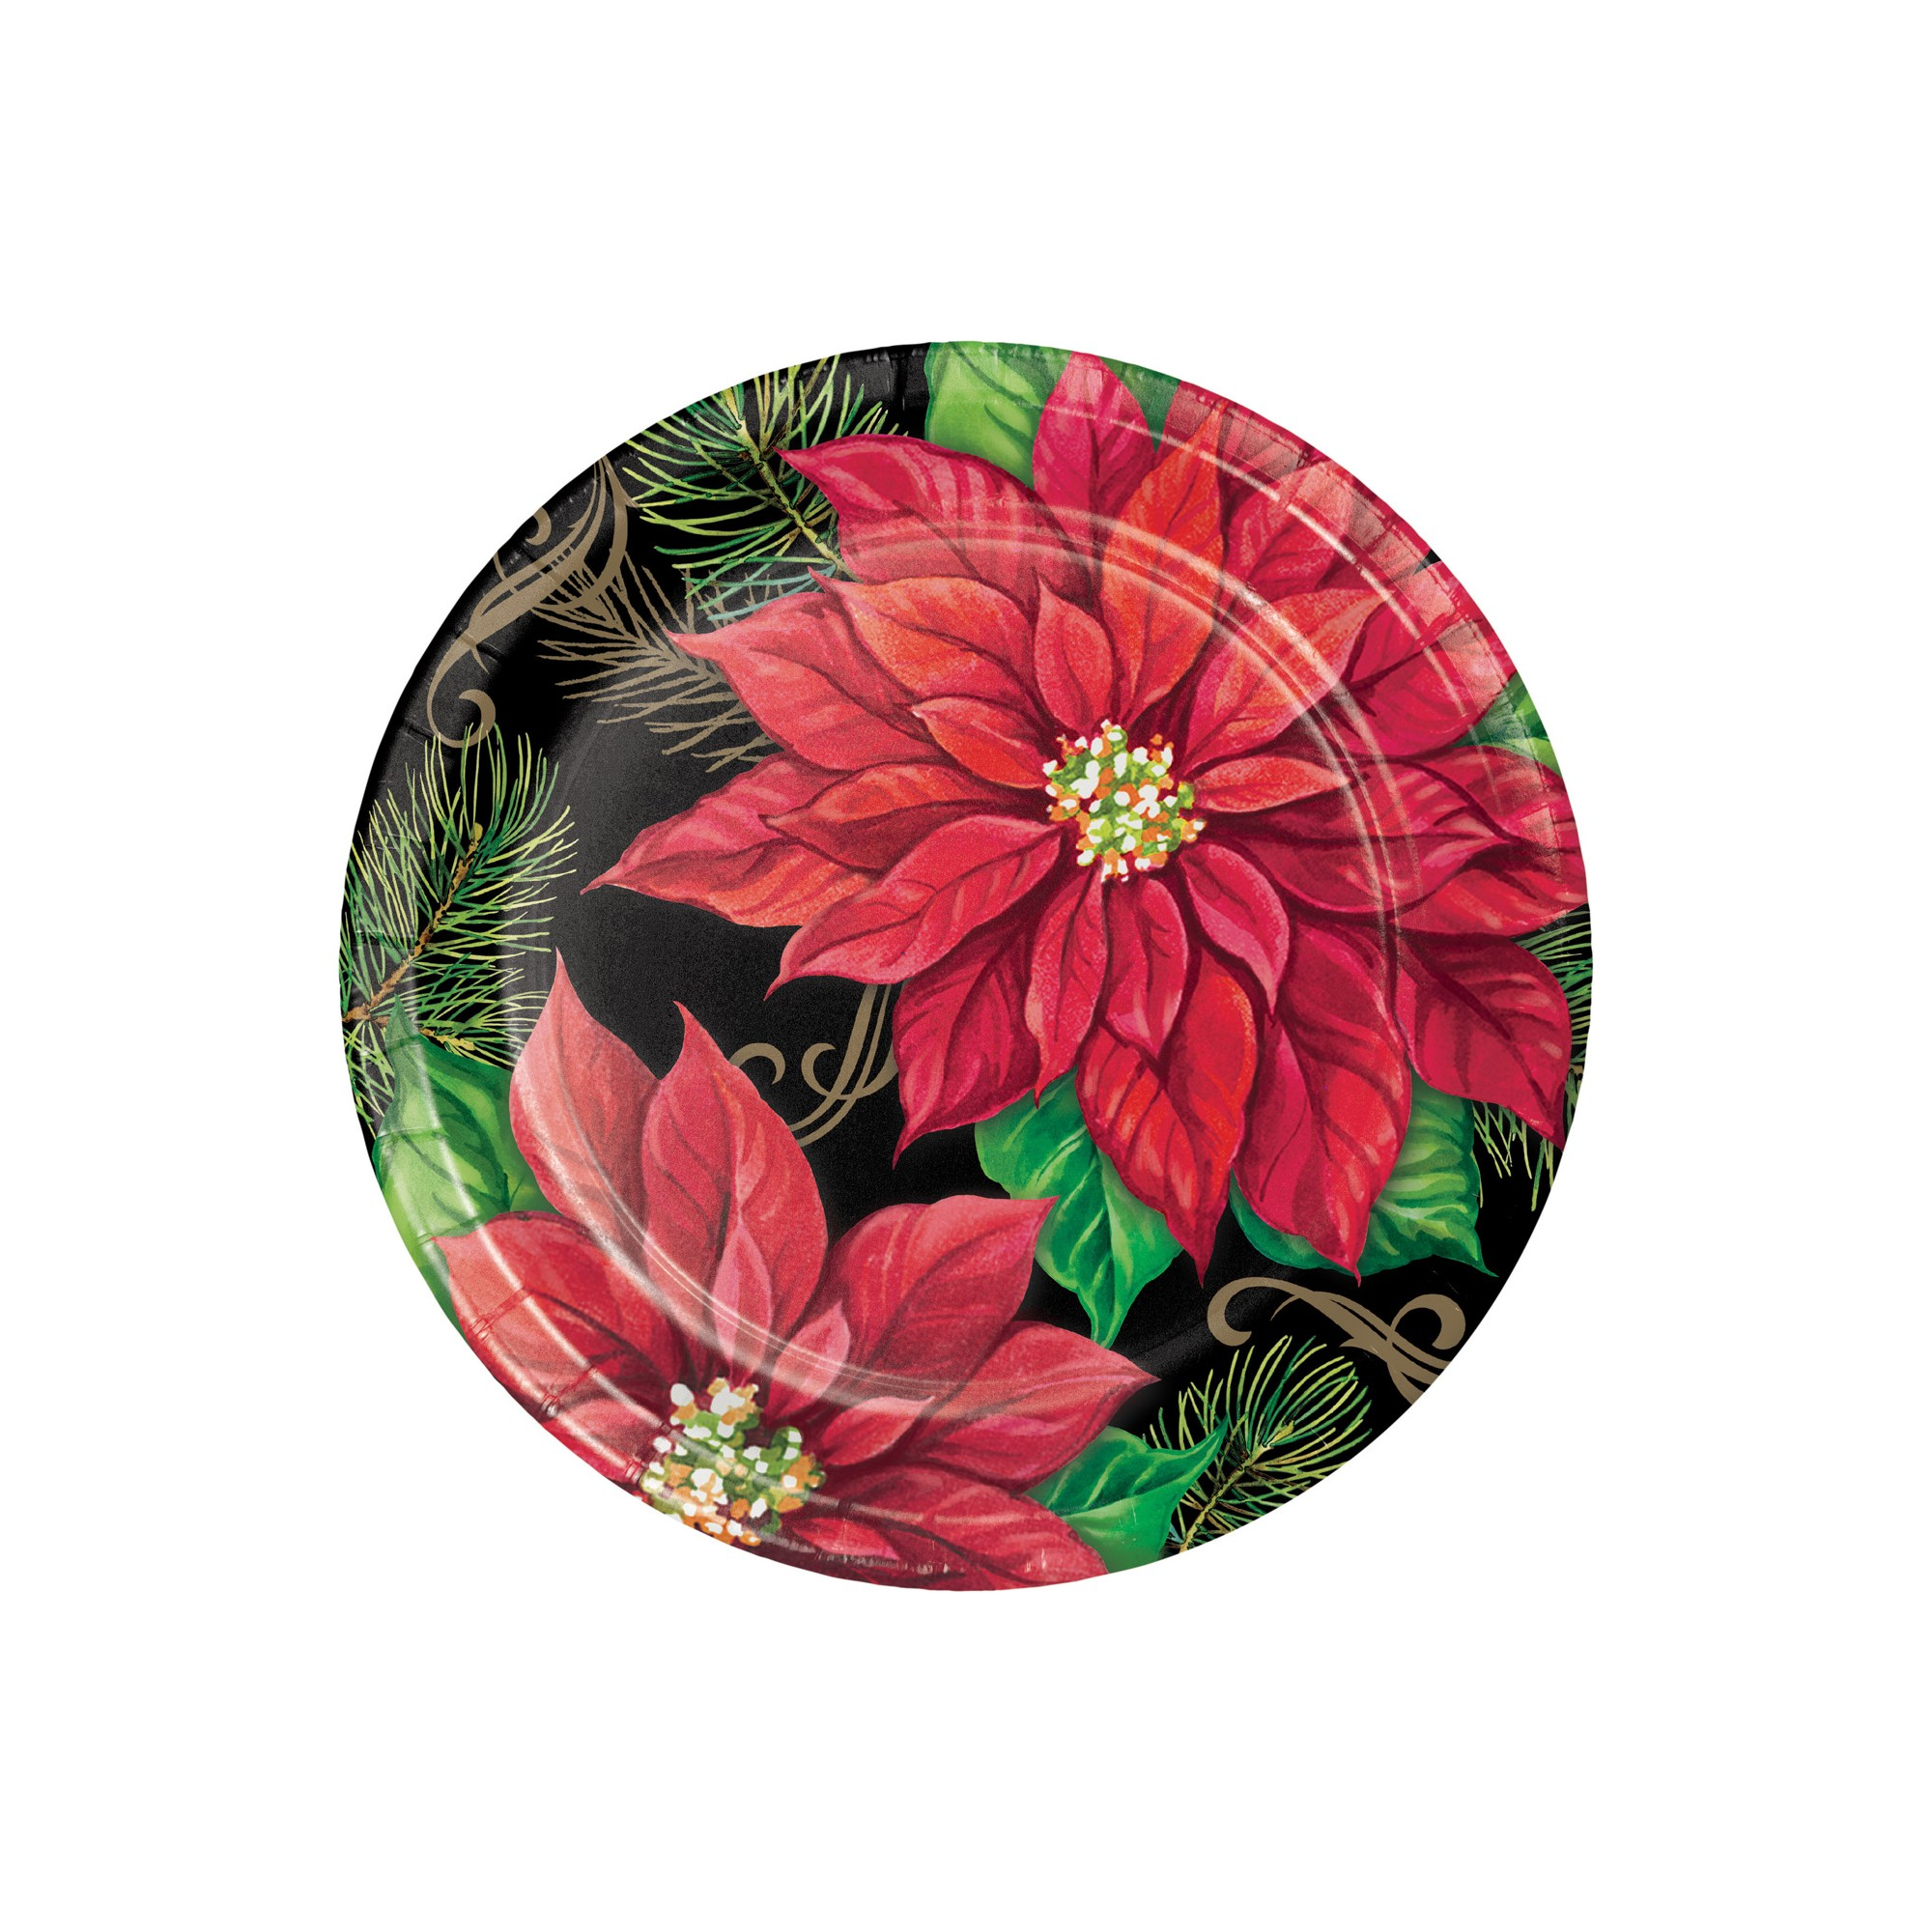 Posh Poinsettia Paper Banquet Plates Red